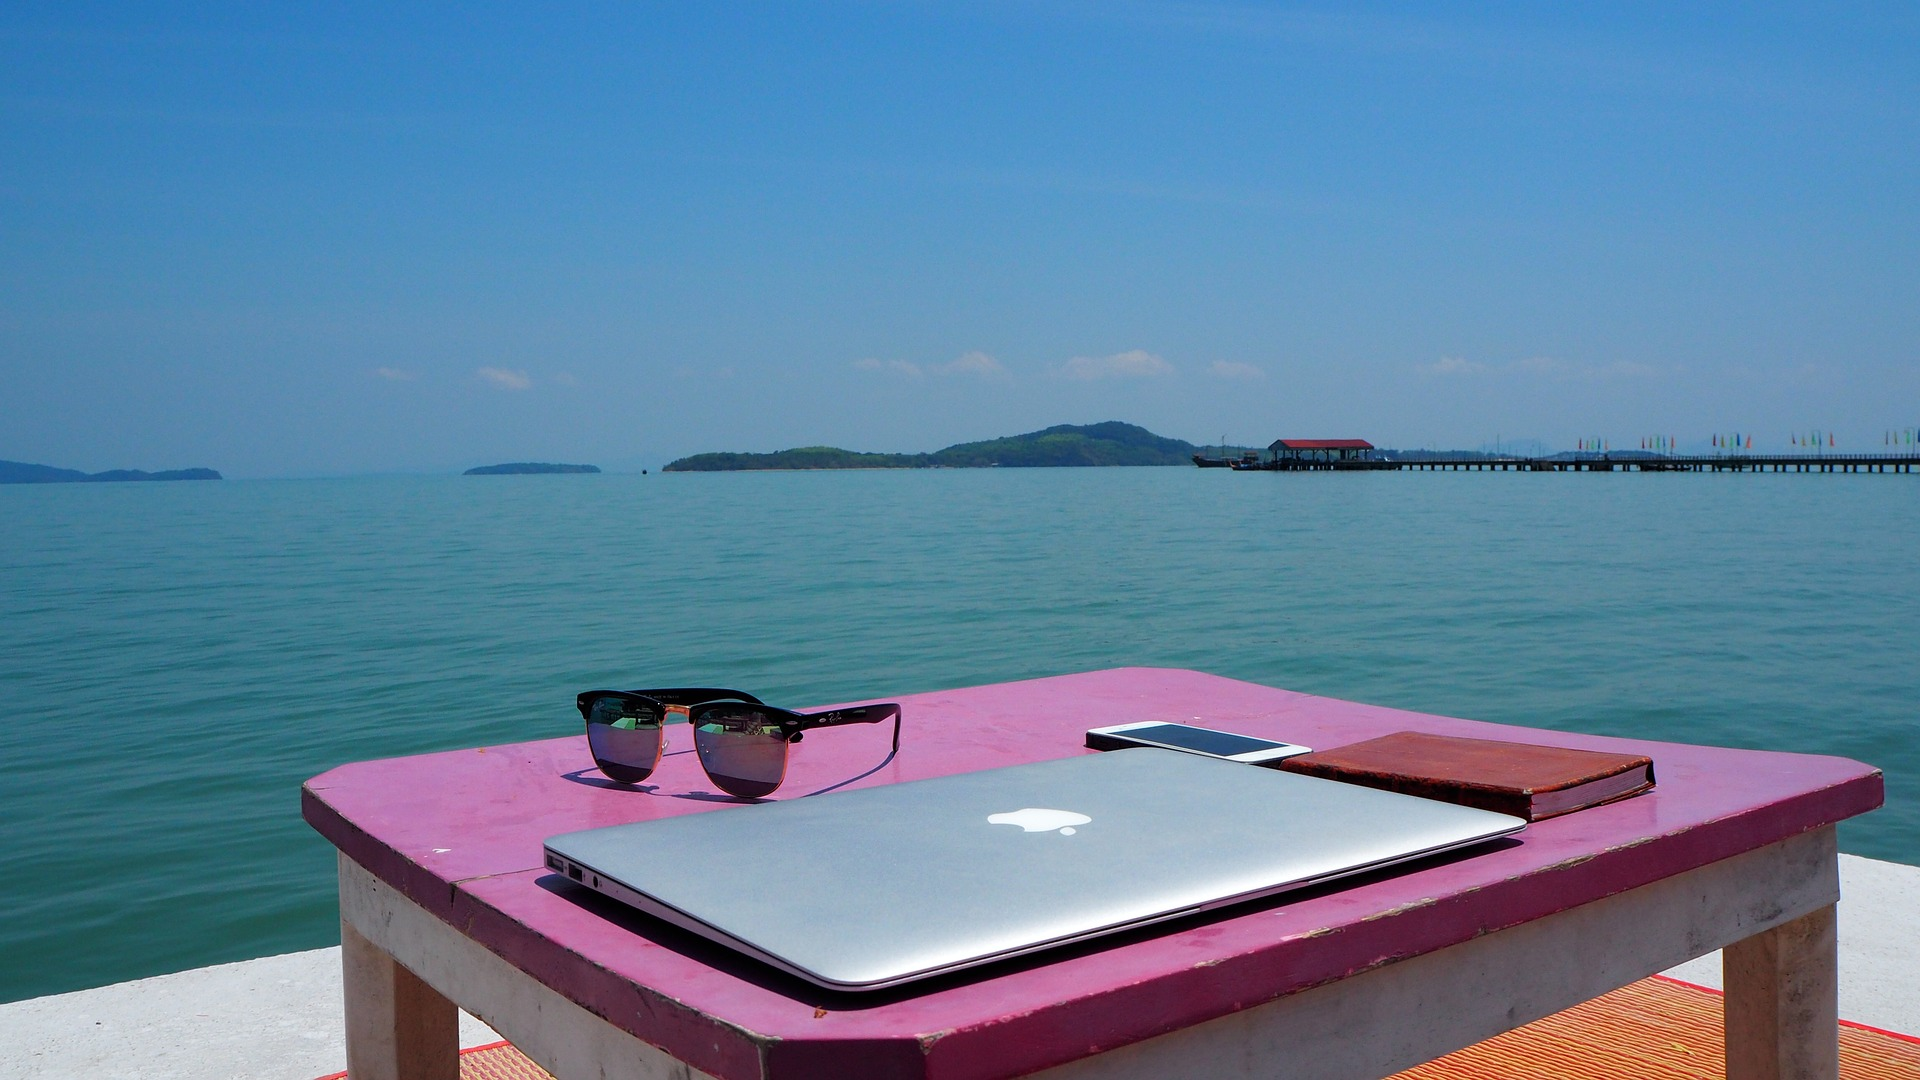 Working remotely by the water